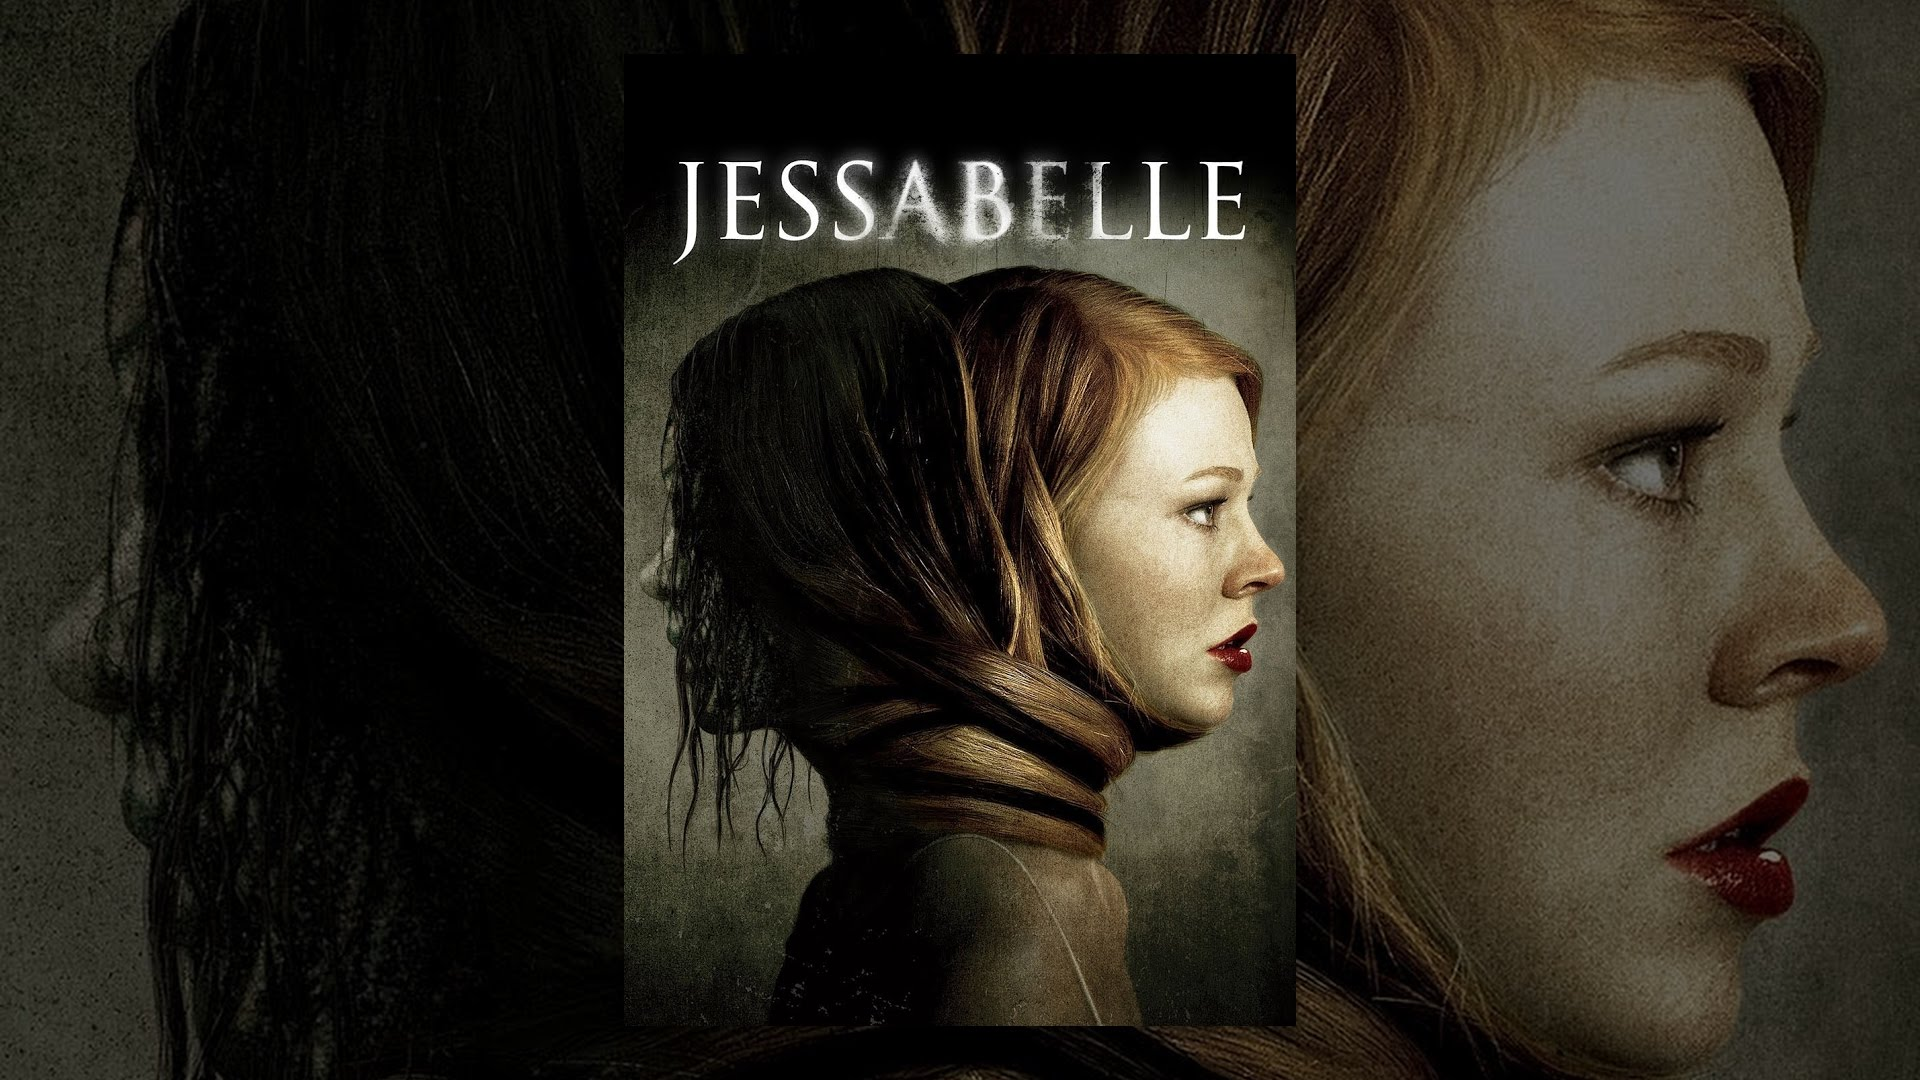 'JESSABELLE'   -  FULL MOVIE   [2014]